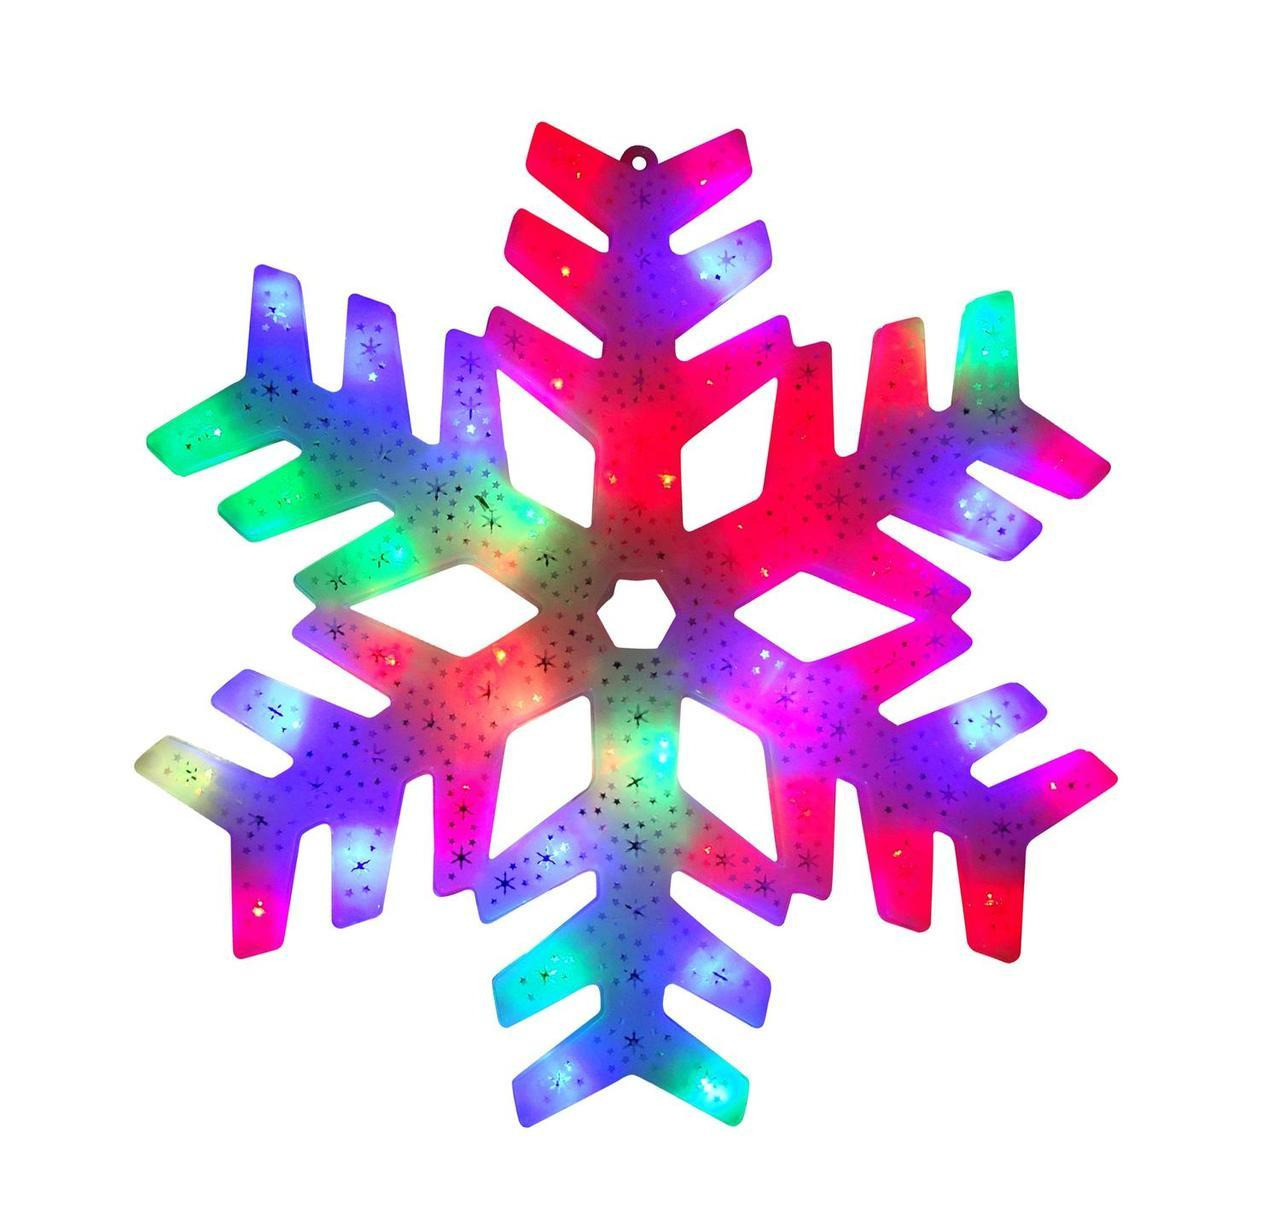 1280x1219 15 Led Color Changing Christmas Snowflake Window Silhouette